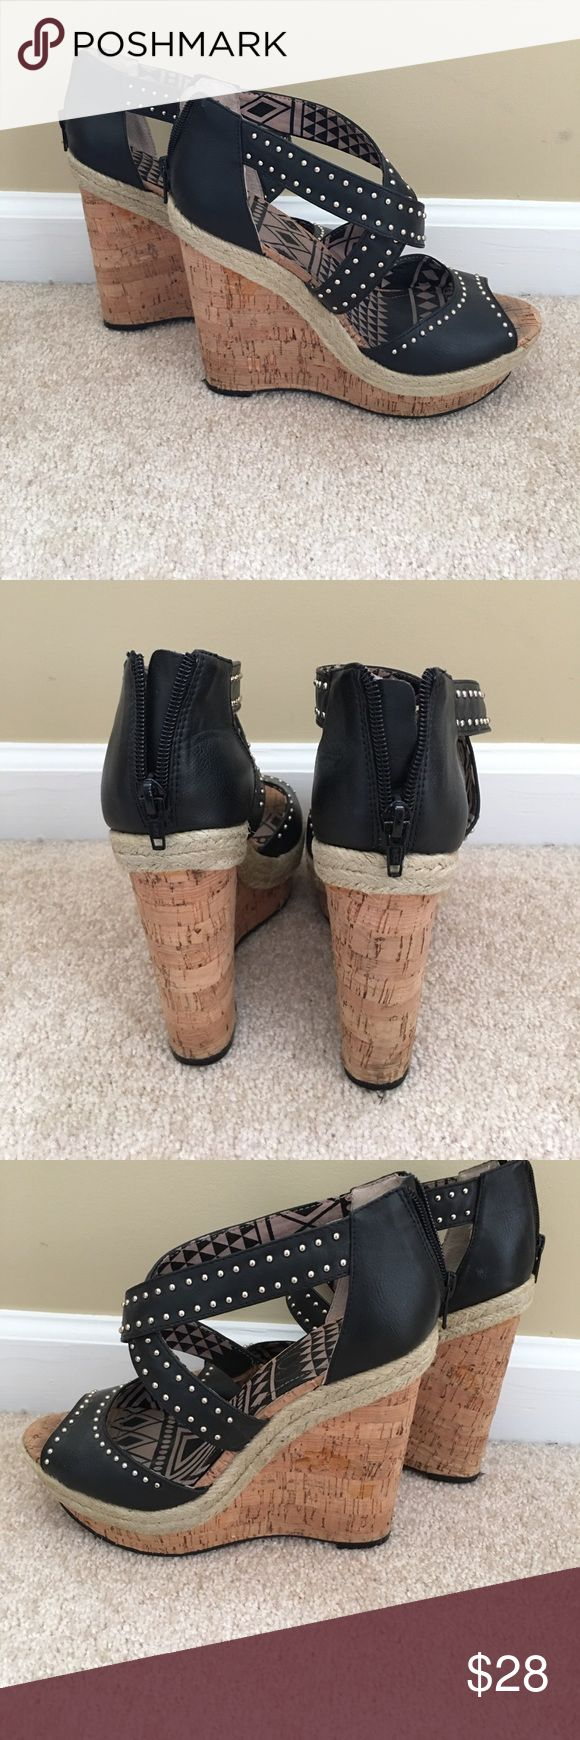 Jessica Simpson wedge shoes. Great condition. Jessica Simpson wedge shoes. Great condition. Jessica Simpson Shoes Wedges